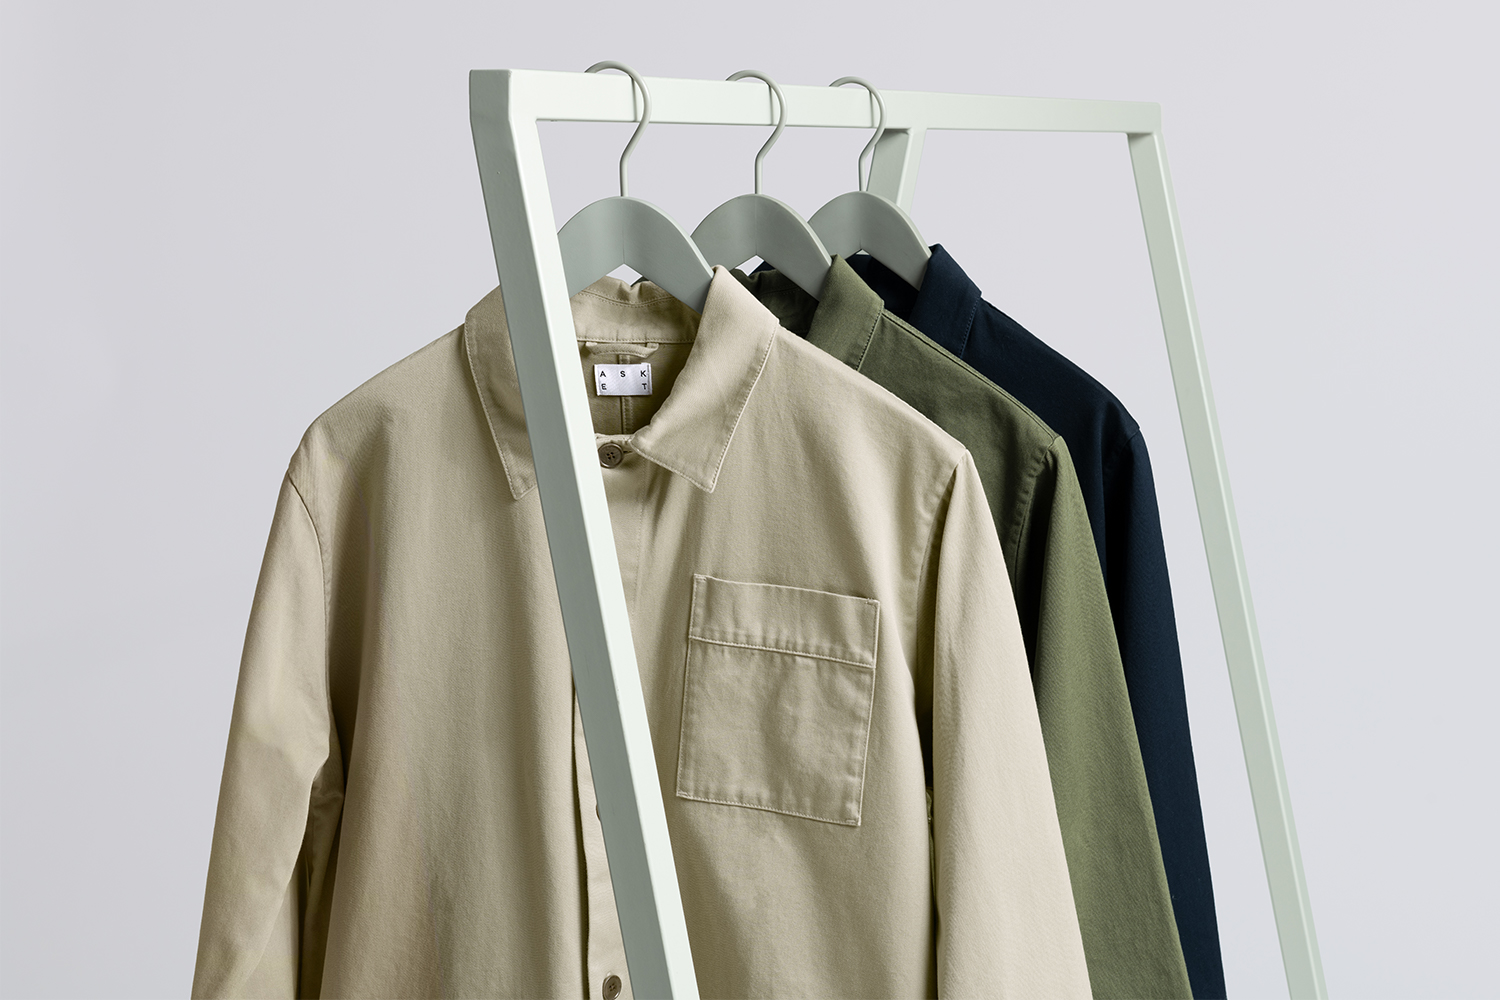 A clothing rack holding overshirts from menswear brand Asket